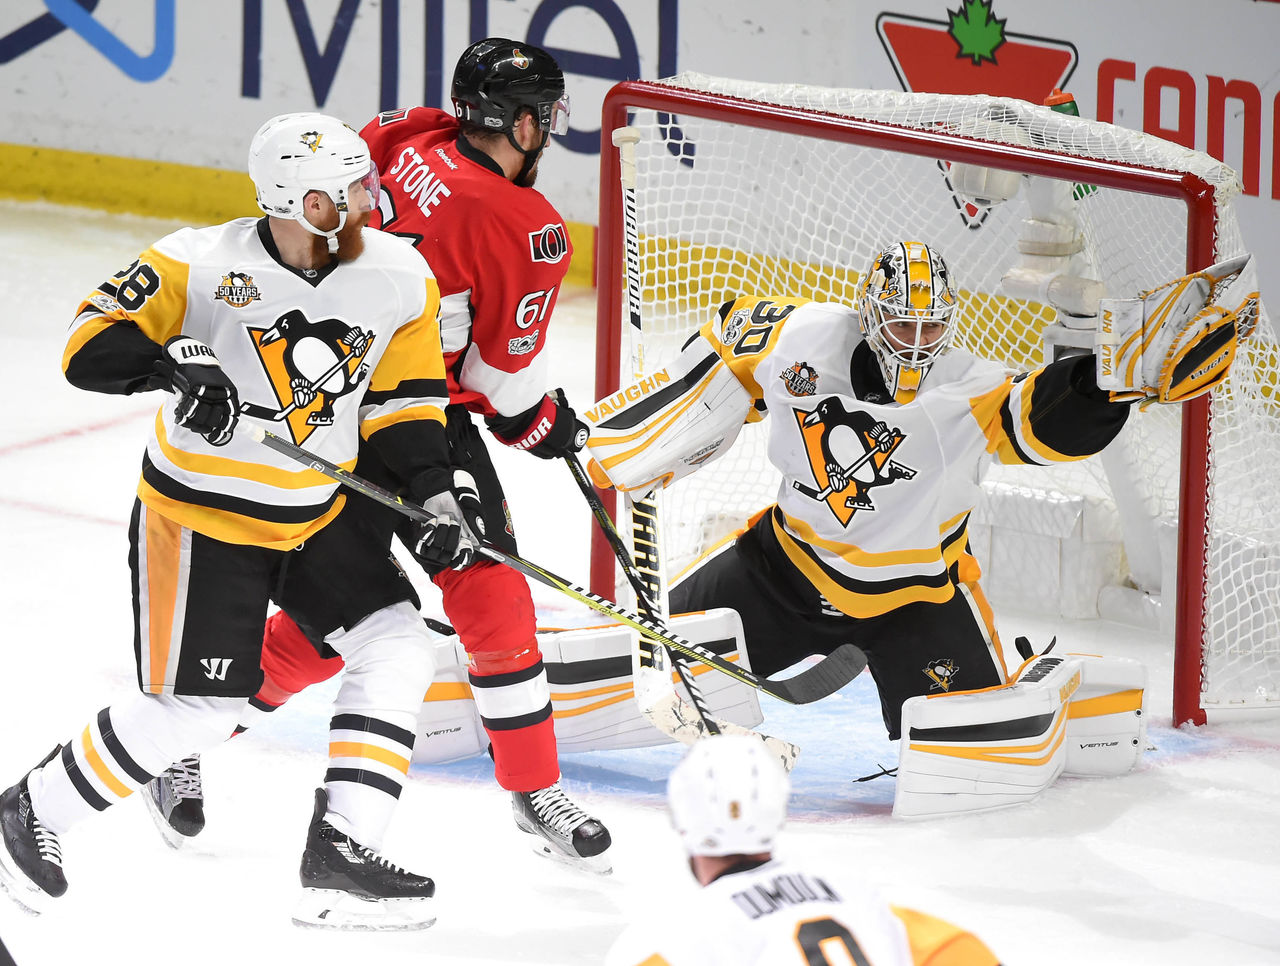 Cropped 2017 05 18t025158z 1857574563 nocid rtrmadp 3 nhl stanley cup playoffs pittsburgh penguins at ottawa senators